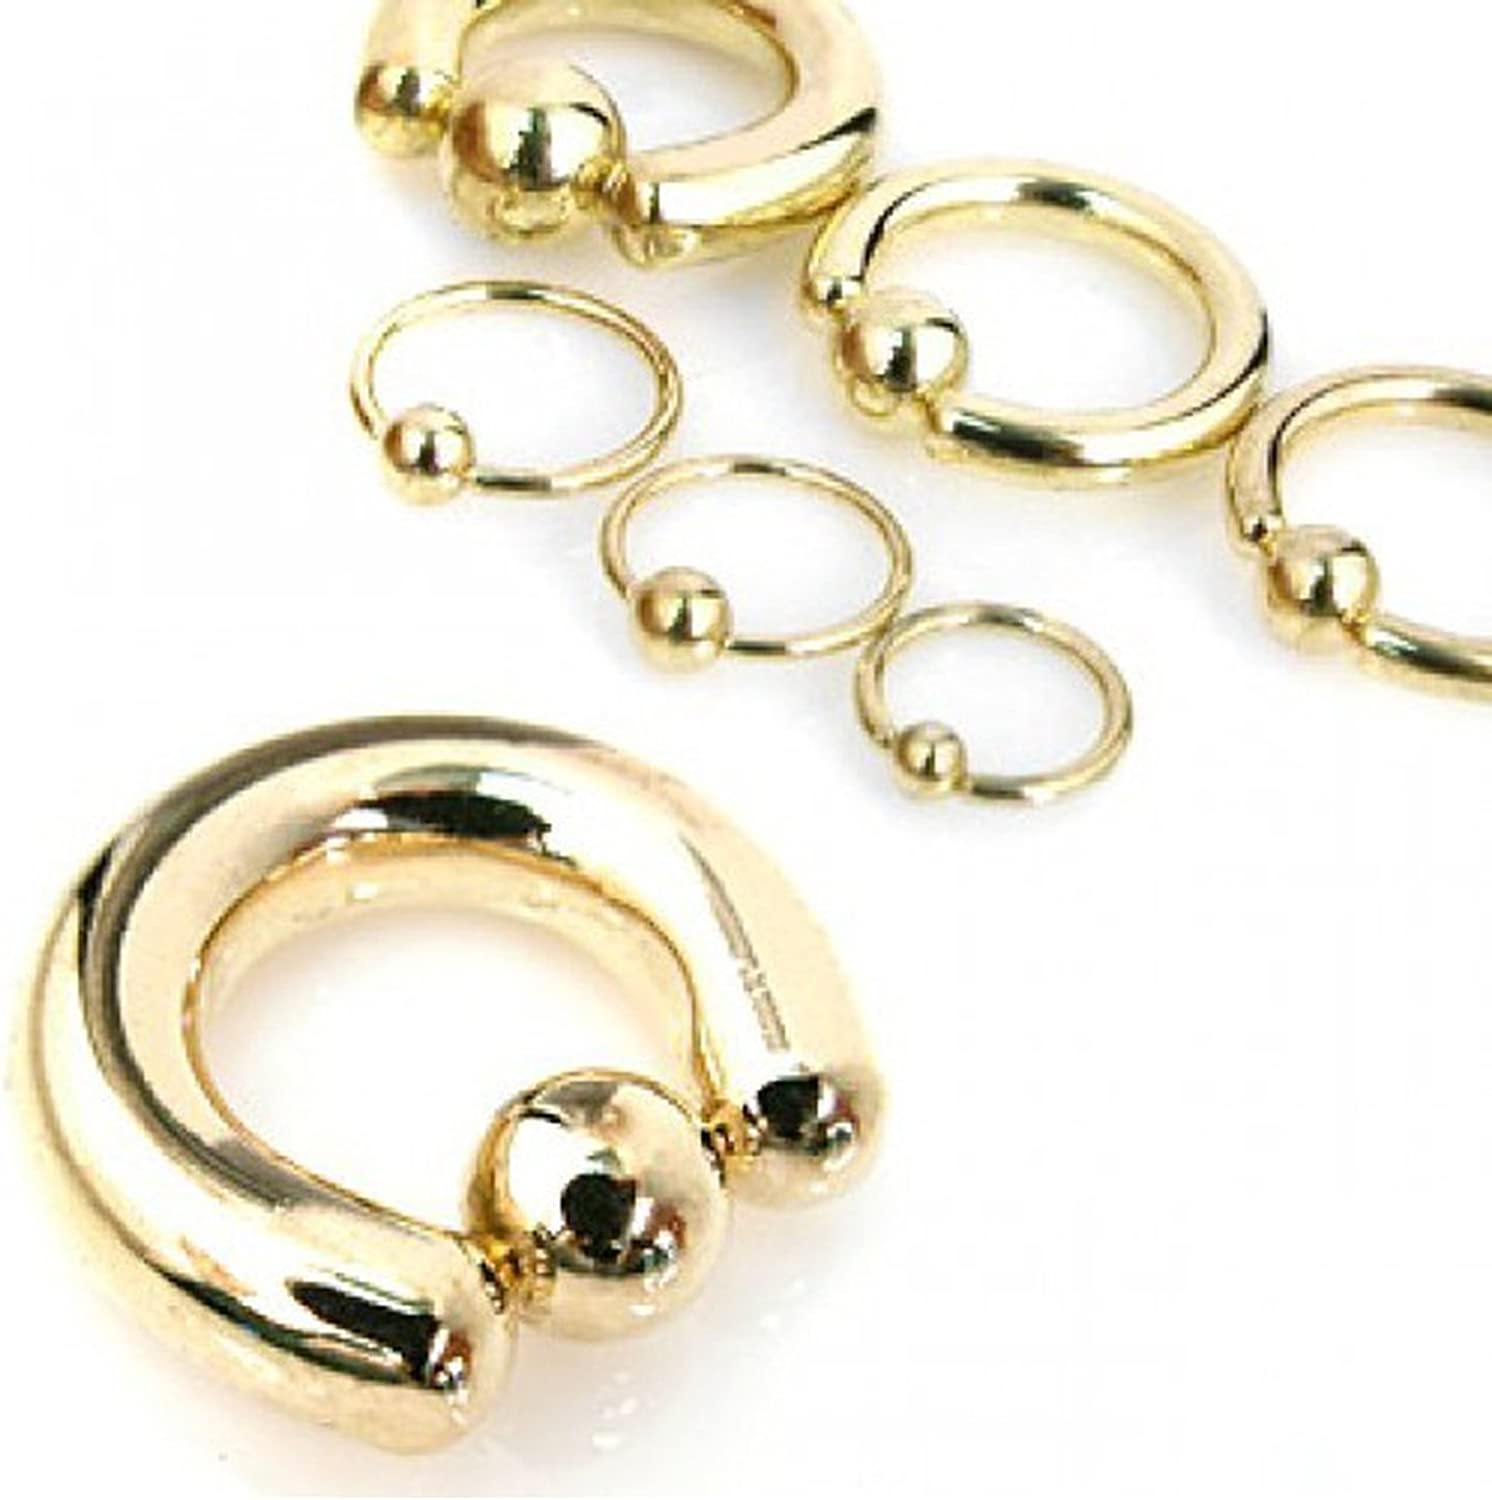 Inspiration Dezigns Gold Captive Bead Piercing Jewelry Rings